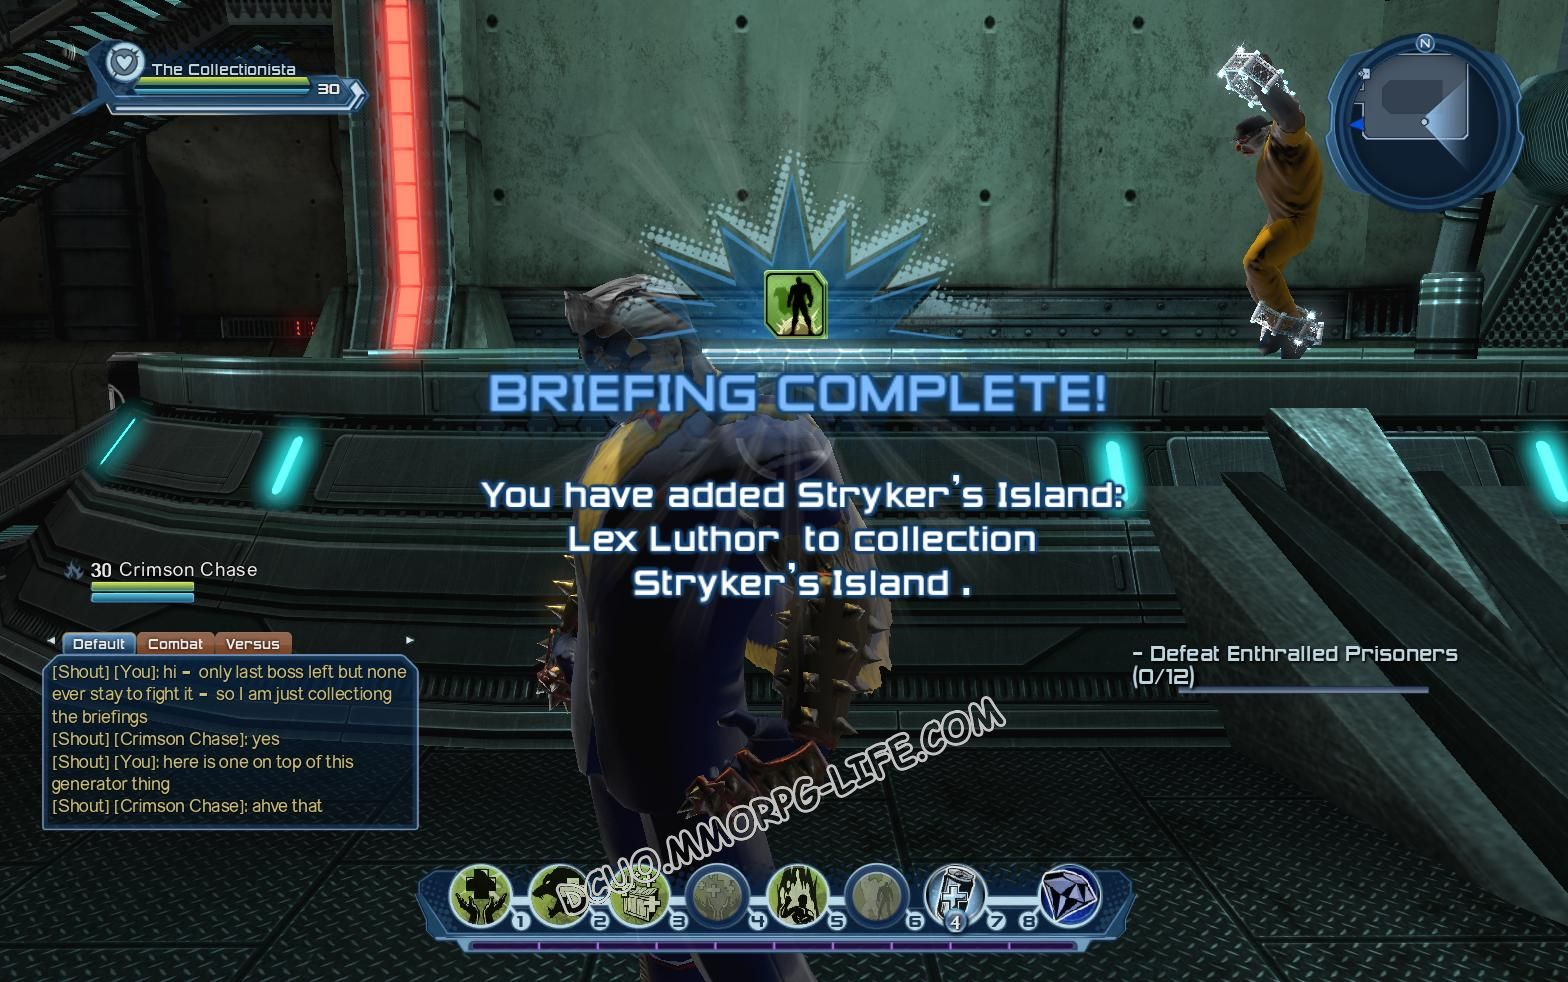 Briefing: Stryker's Island, step 5 Stryker's Island: Lex Luthor  image 2071 middle size